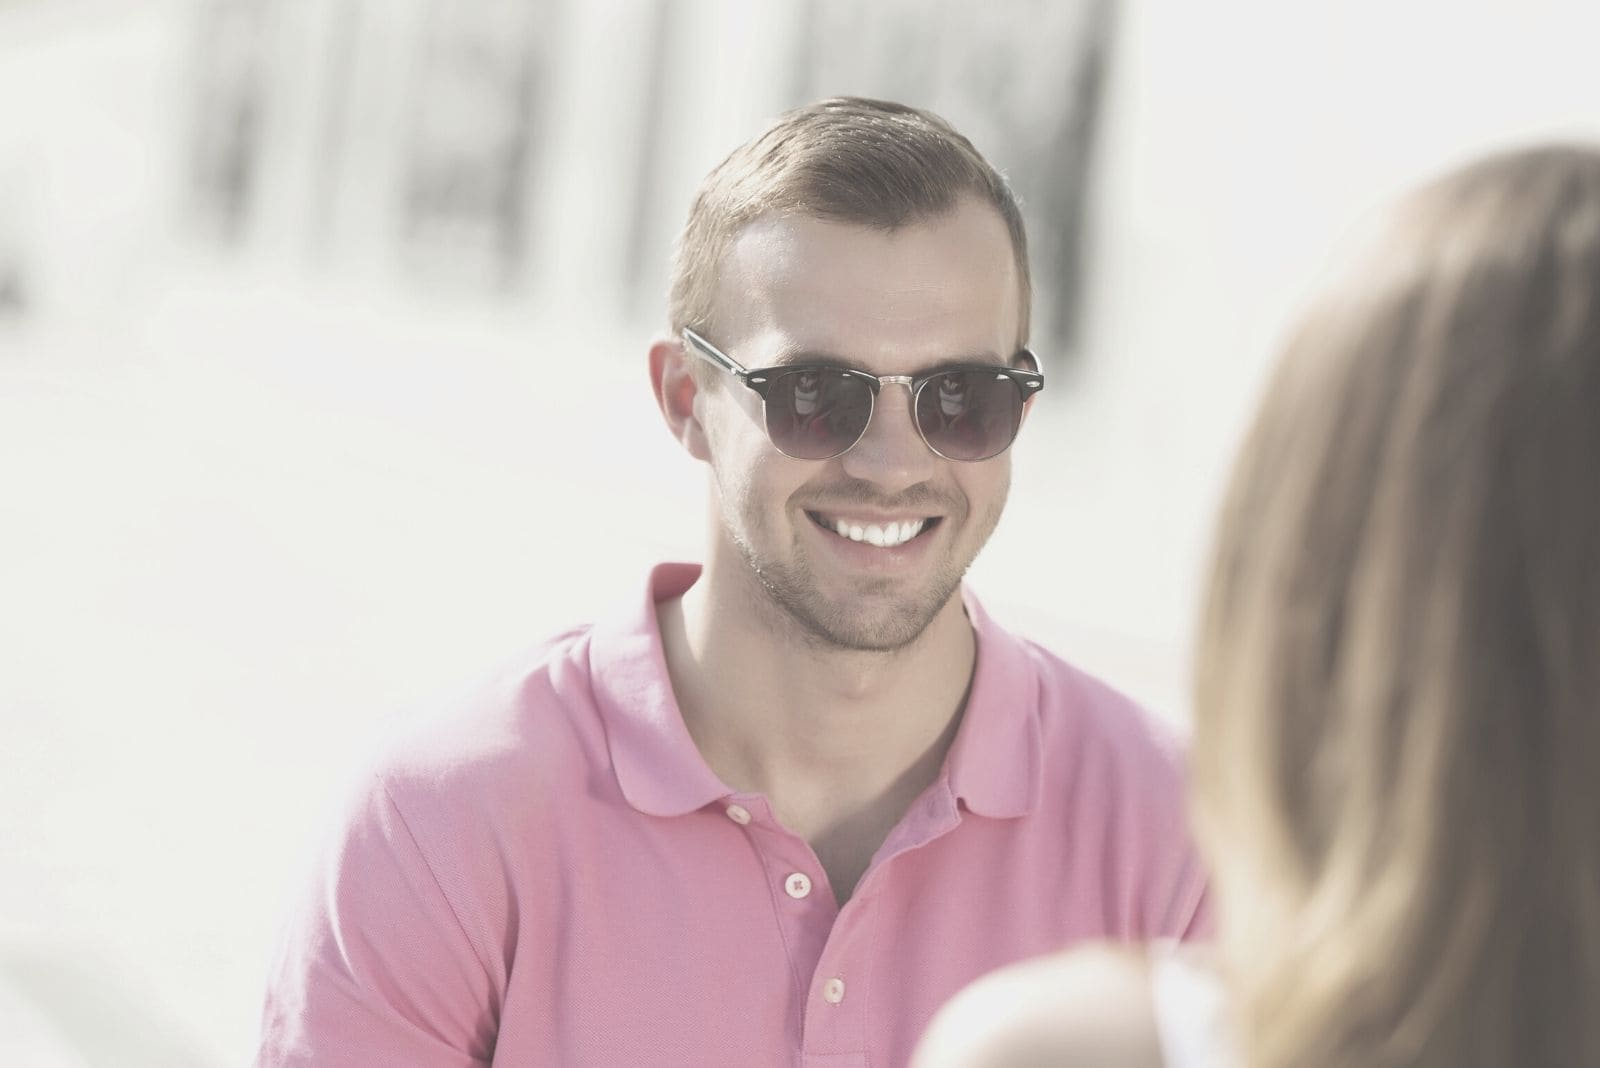 young man in pink top wearing sunglasses smiling at a woman outdoors